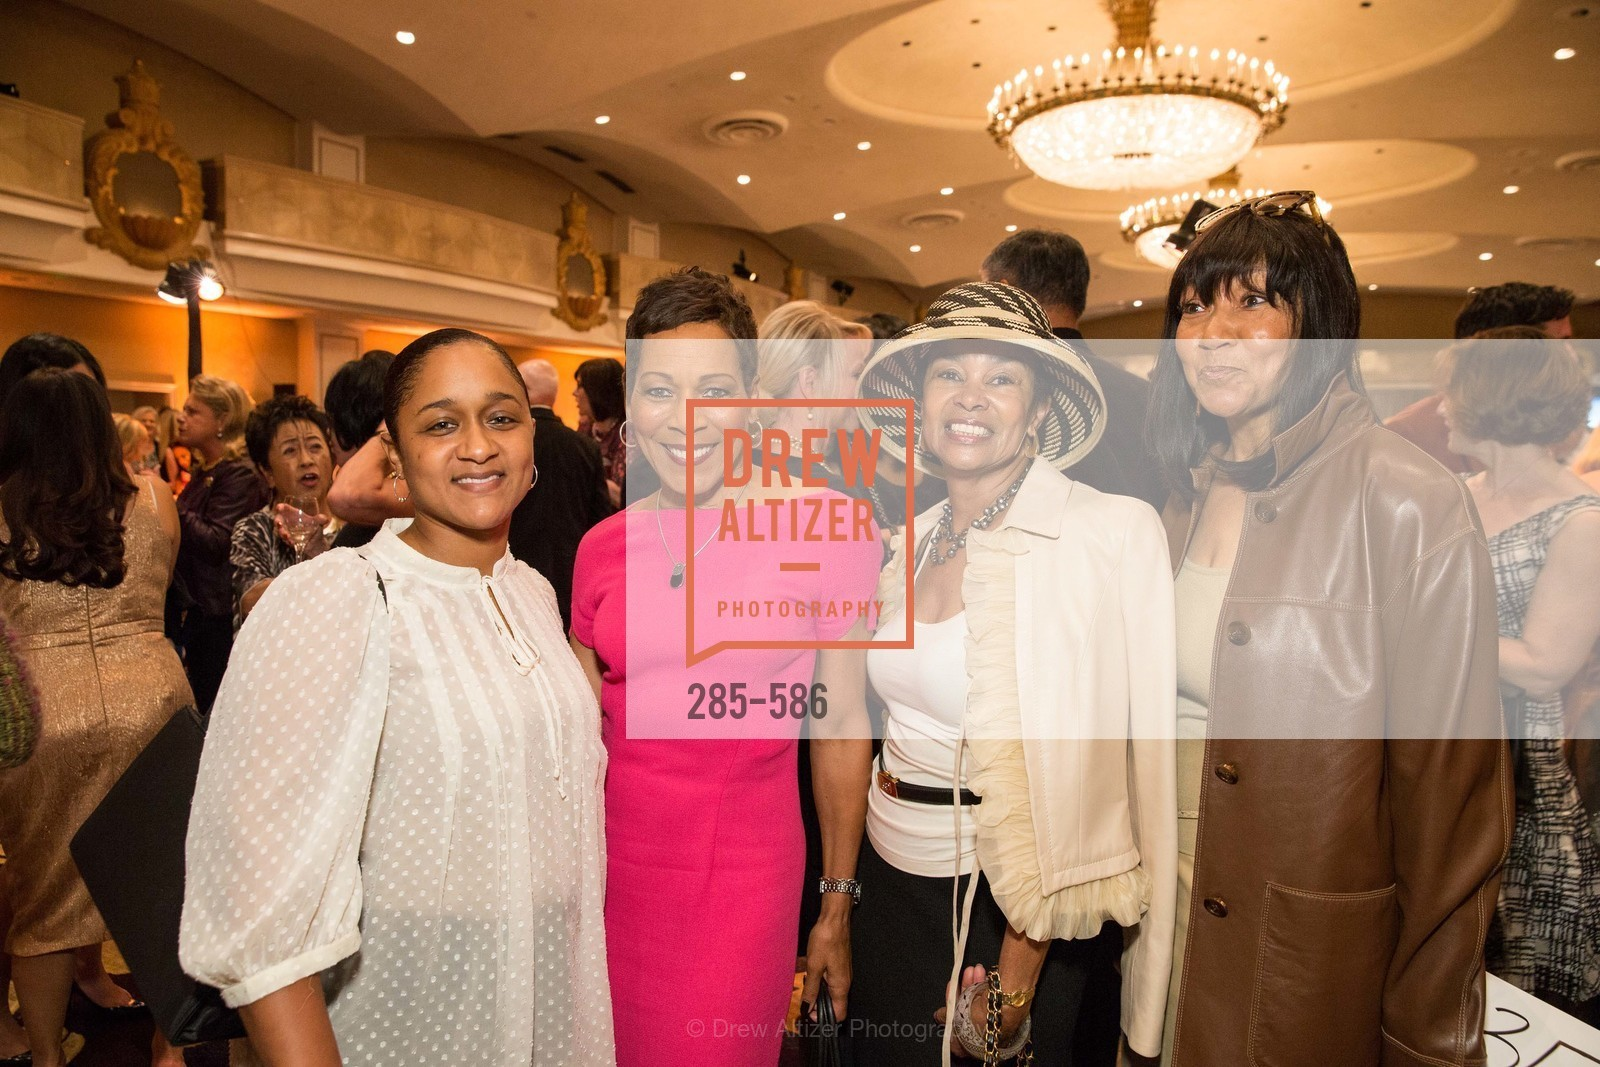 Ciara Coleman, Valerie Coleman Morris, Anette Harris, Deborah Hannah, 2014 Bay Area ARTHRITIS AUXILLIARY Benefit & Fashion Show, US, October 1st, 2014,Drew Altizer, Drew Altizer Photography, full-service agency, private events, San Francisco photographer, photographer california